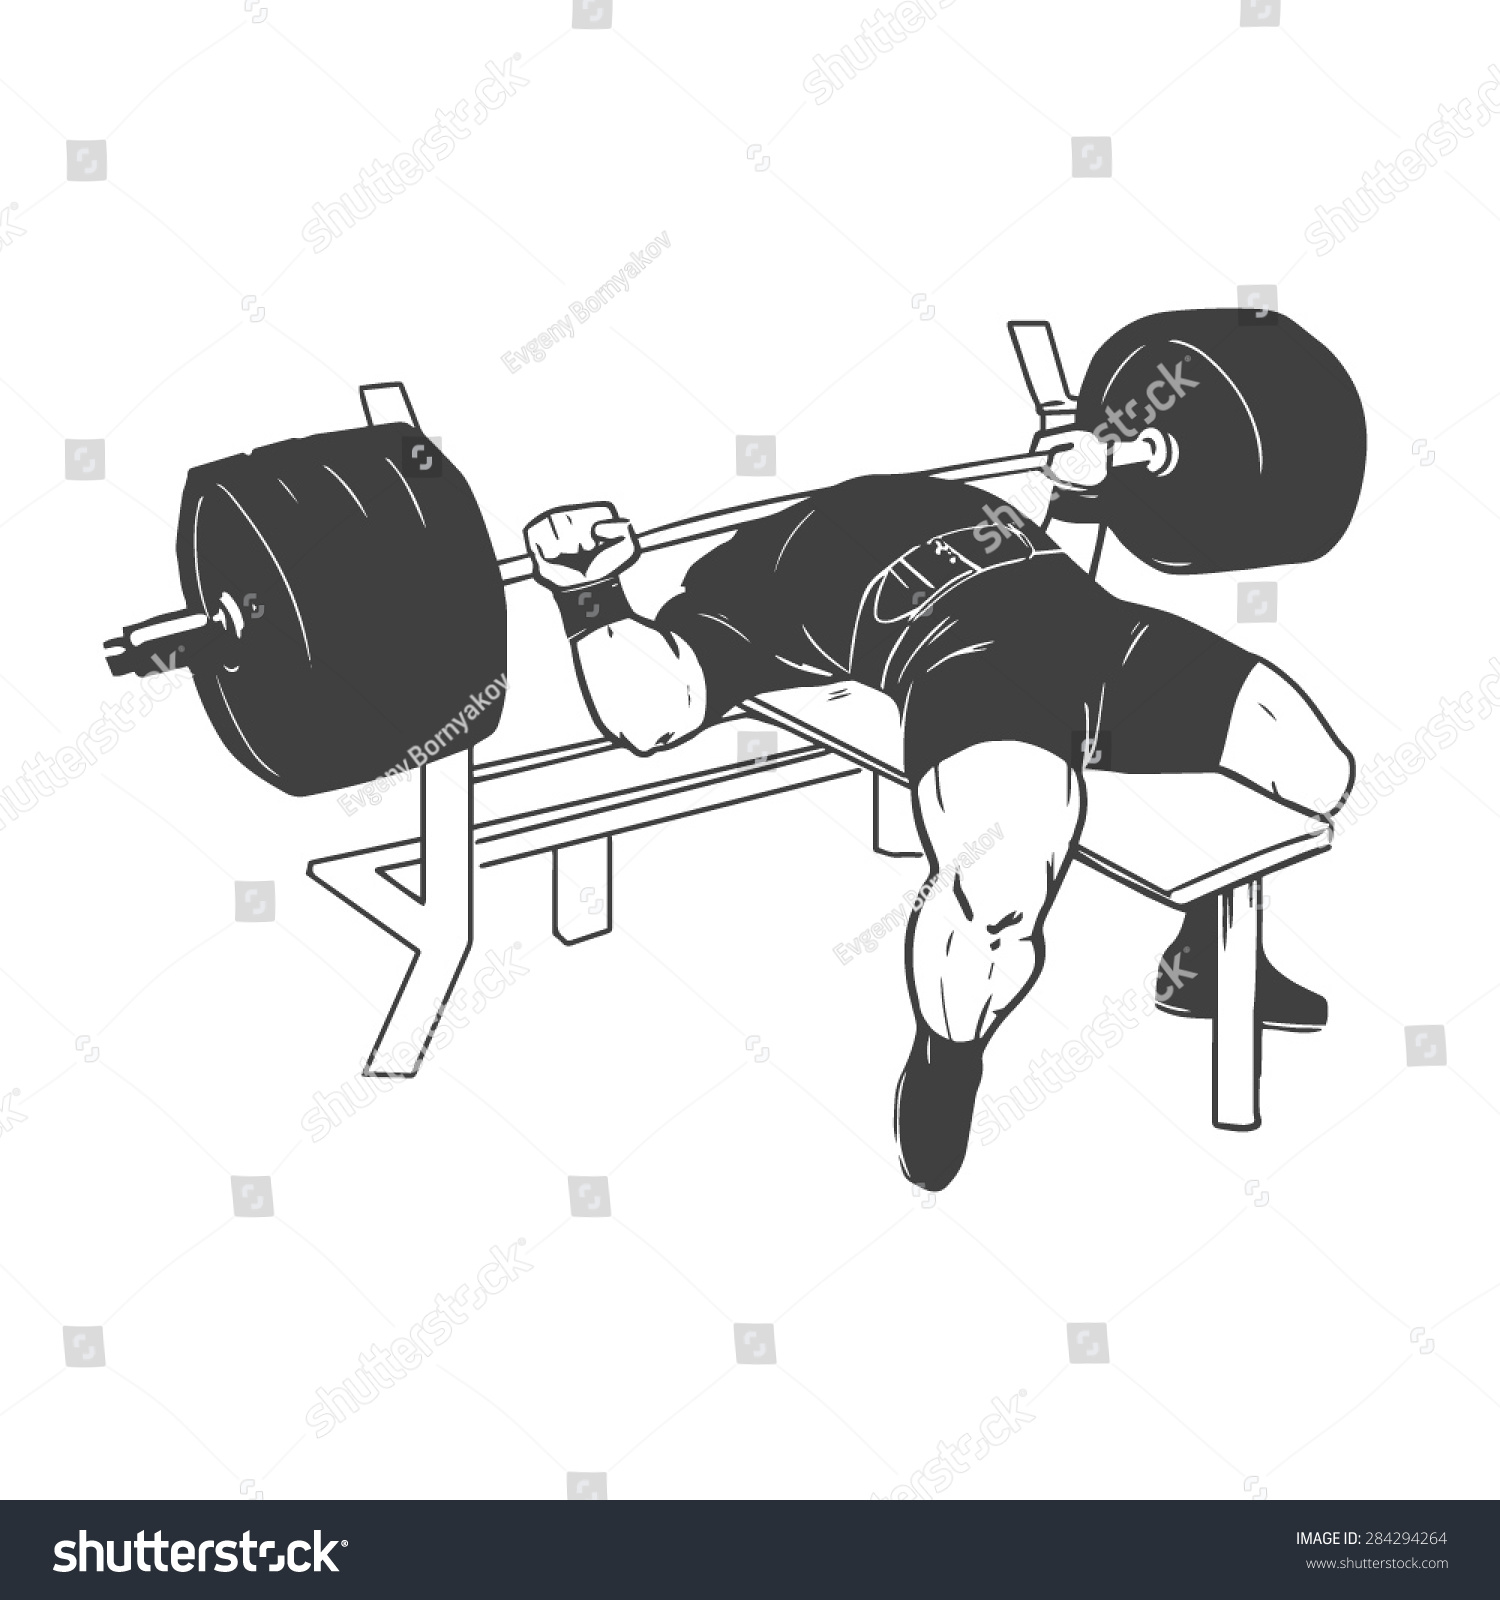 Bench Press Person: Powerlifting Bench Press Figure On Isolated Stock Vector